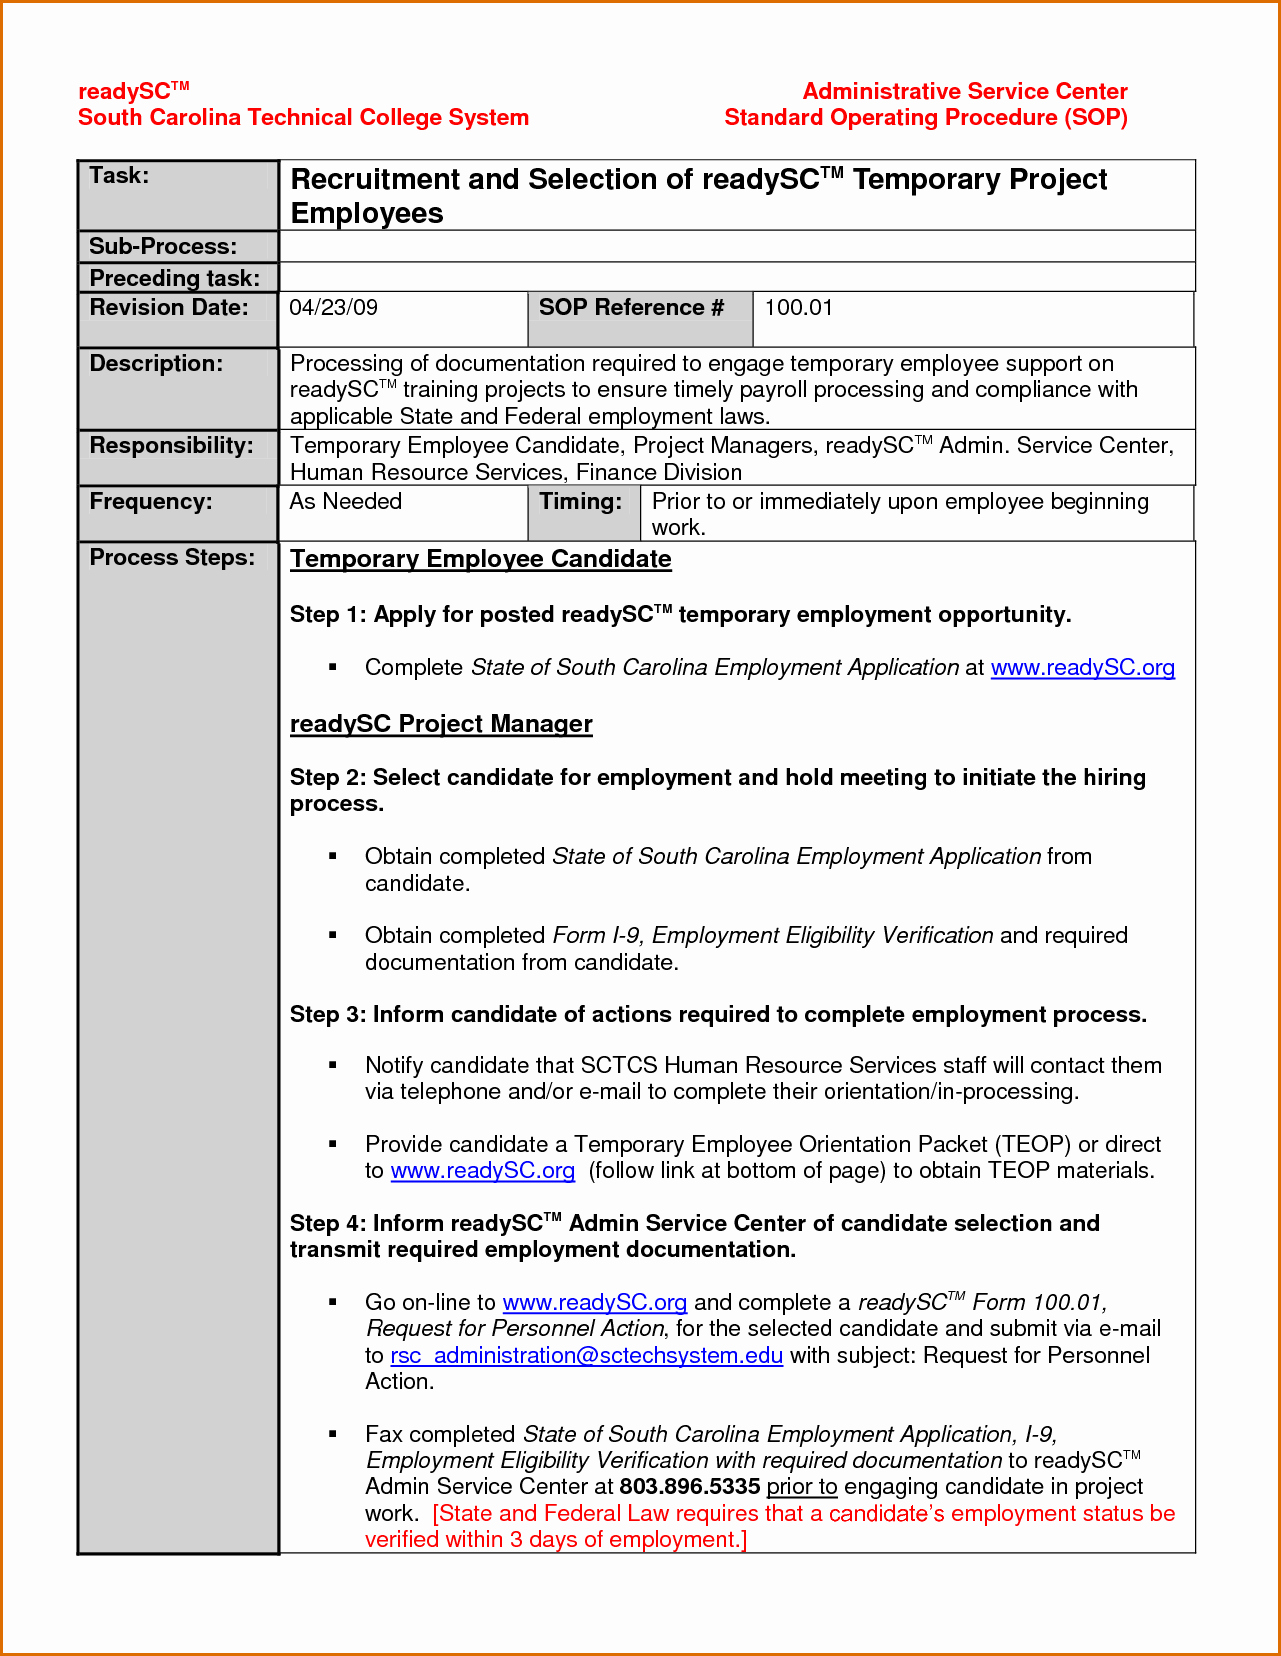 Standard Operating Procedures Template Elegant Standard Operating Procedures Samples